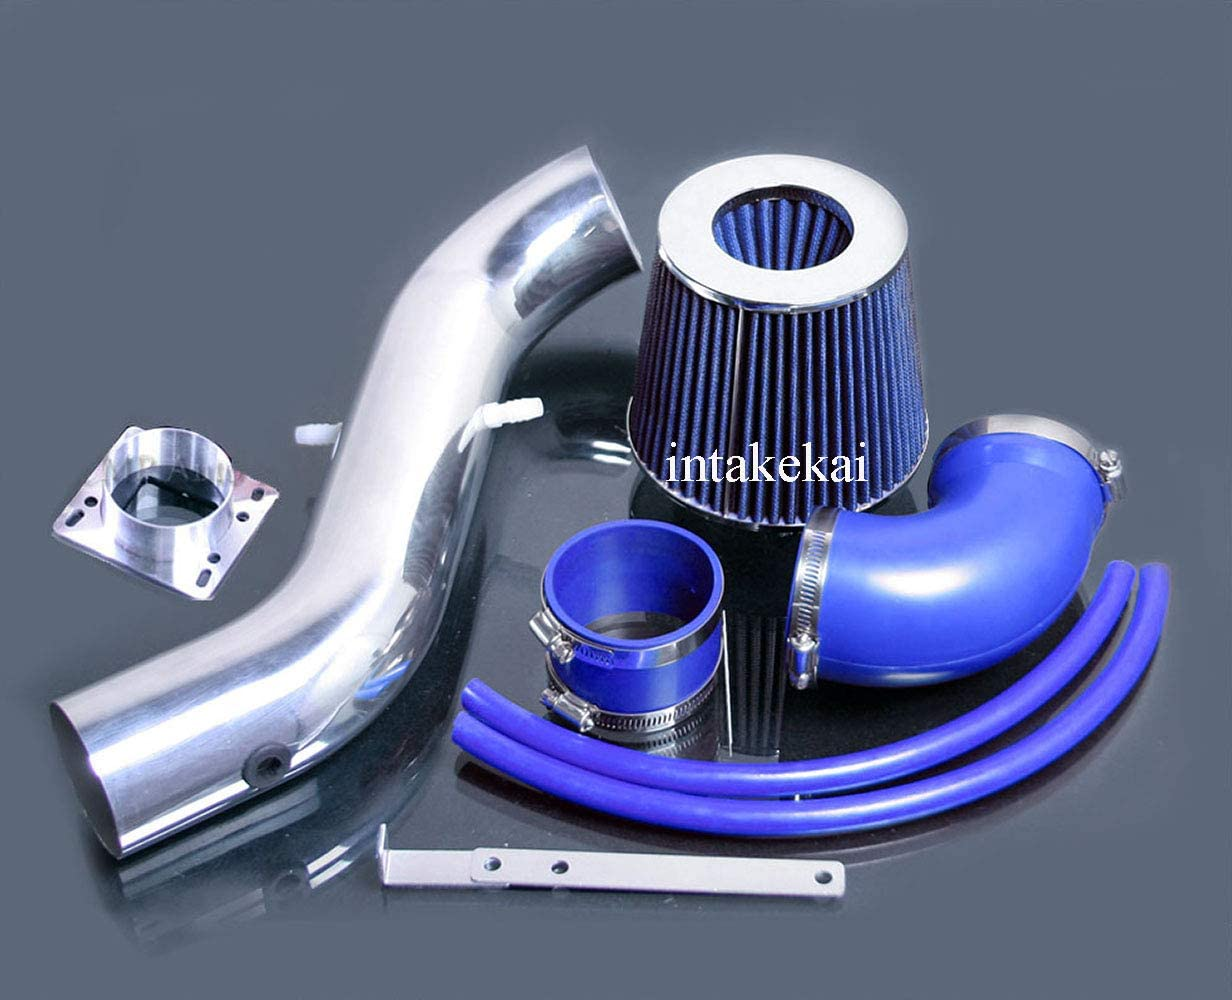 BLUE ONLY FIT ZX2 MODEL PERFORMANCE SHORT RAM AIR INTAKE KIT FILTER FOR 1998-2003 FORD ESCORT ZX2 2.0 2.0L ENGINE